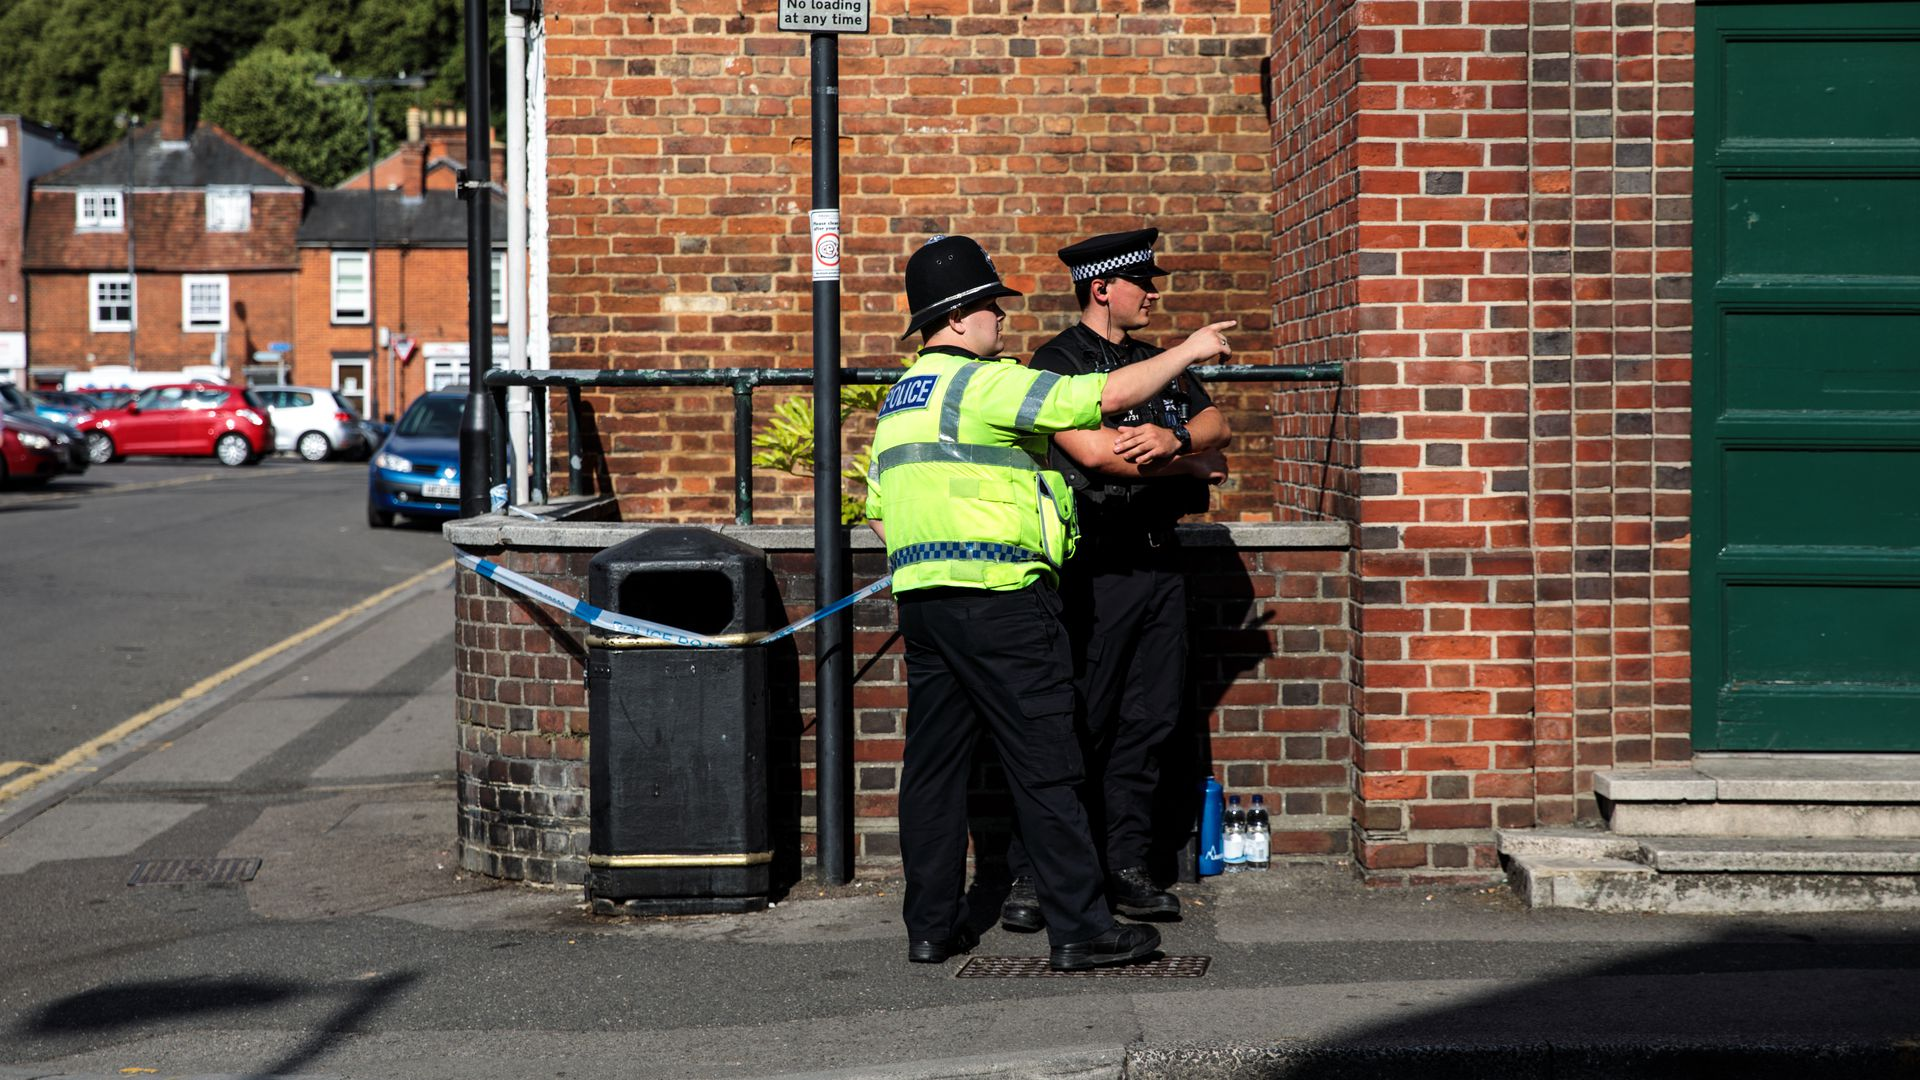 Two UK police officers